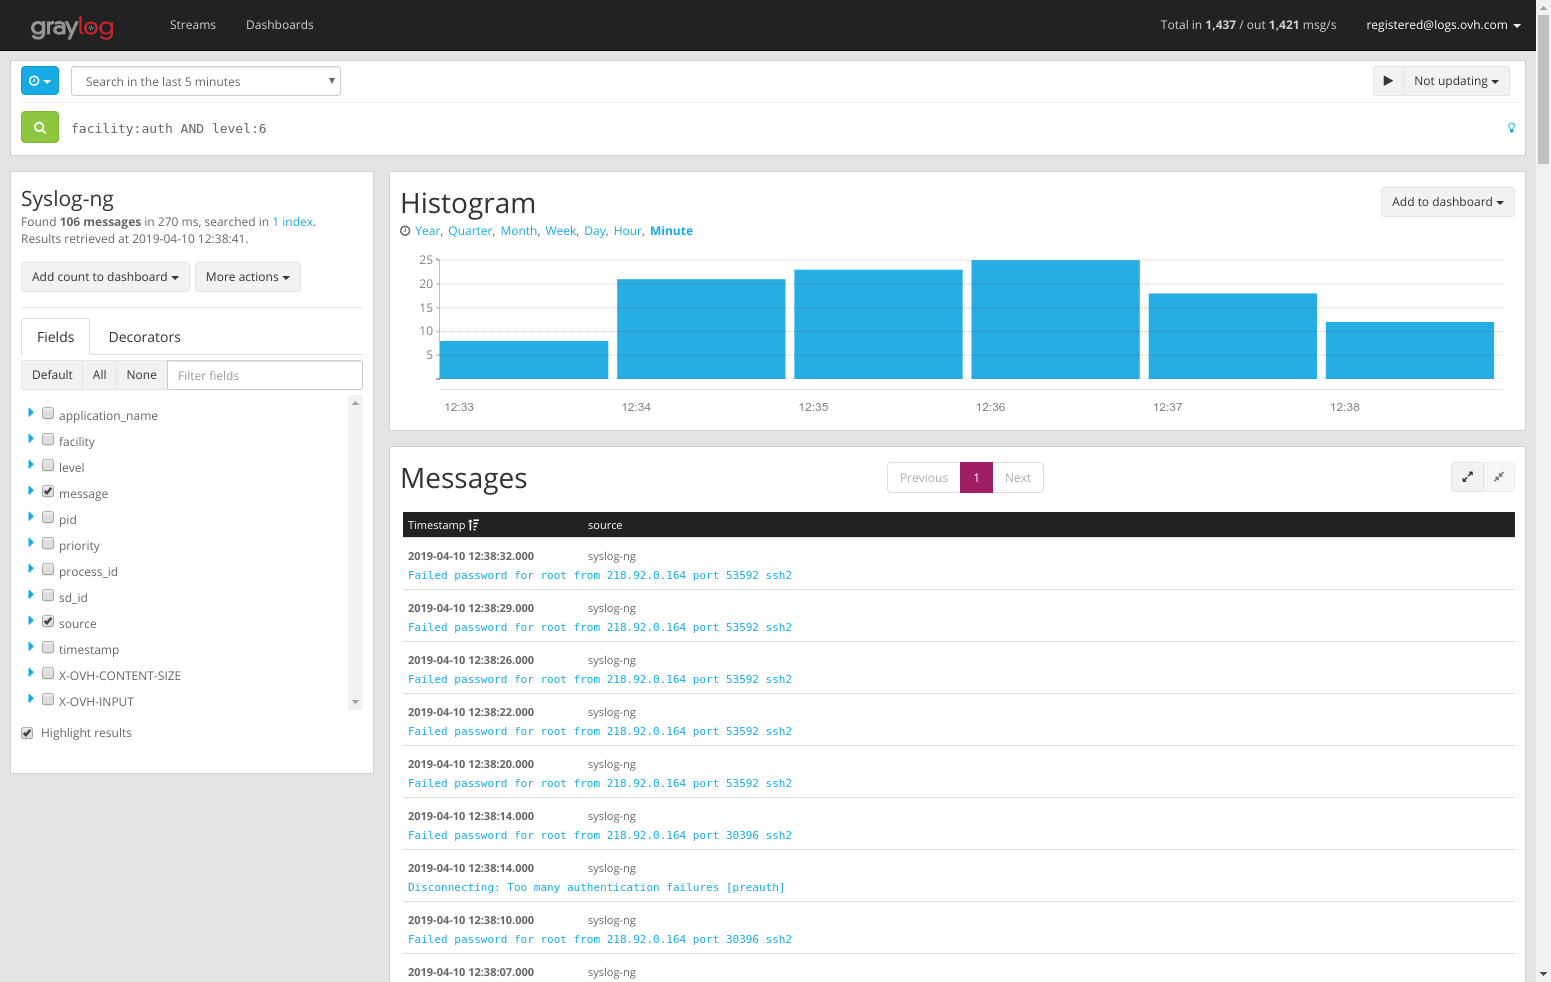 Graylog search view